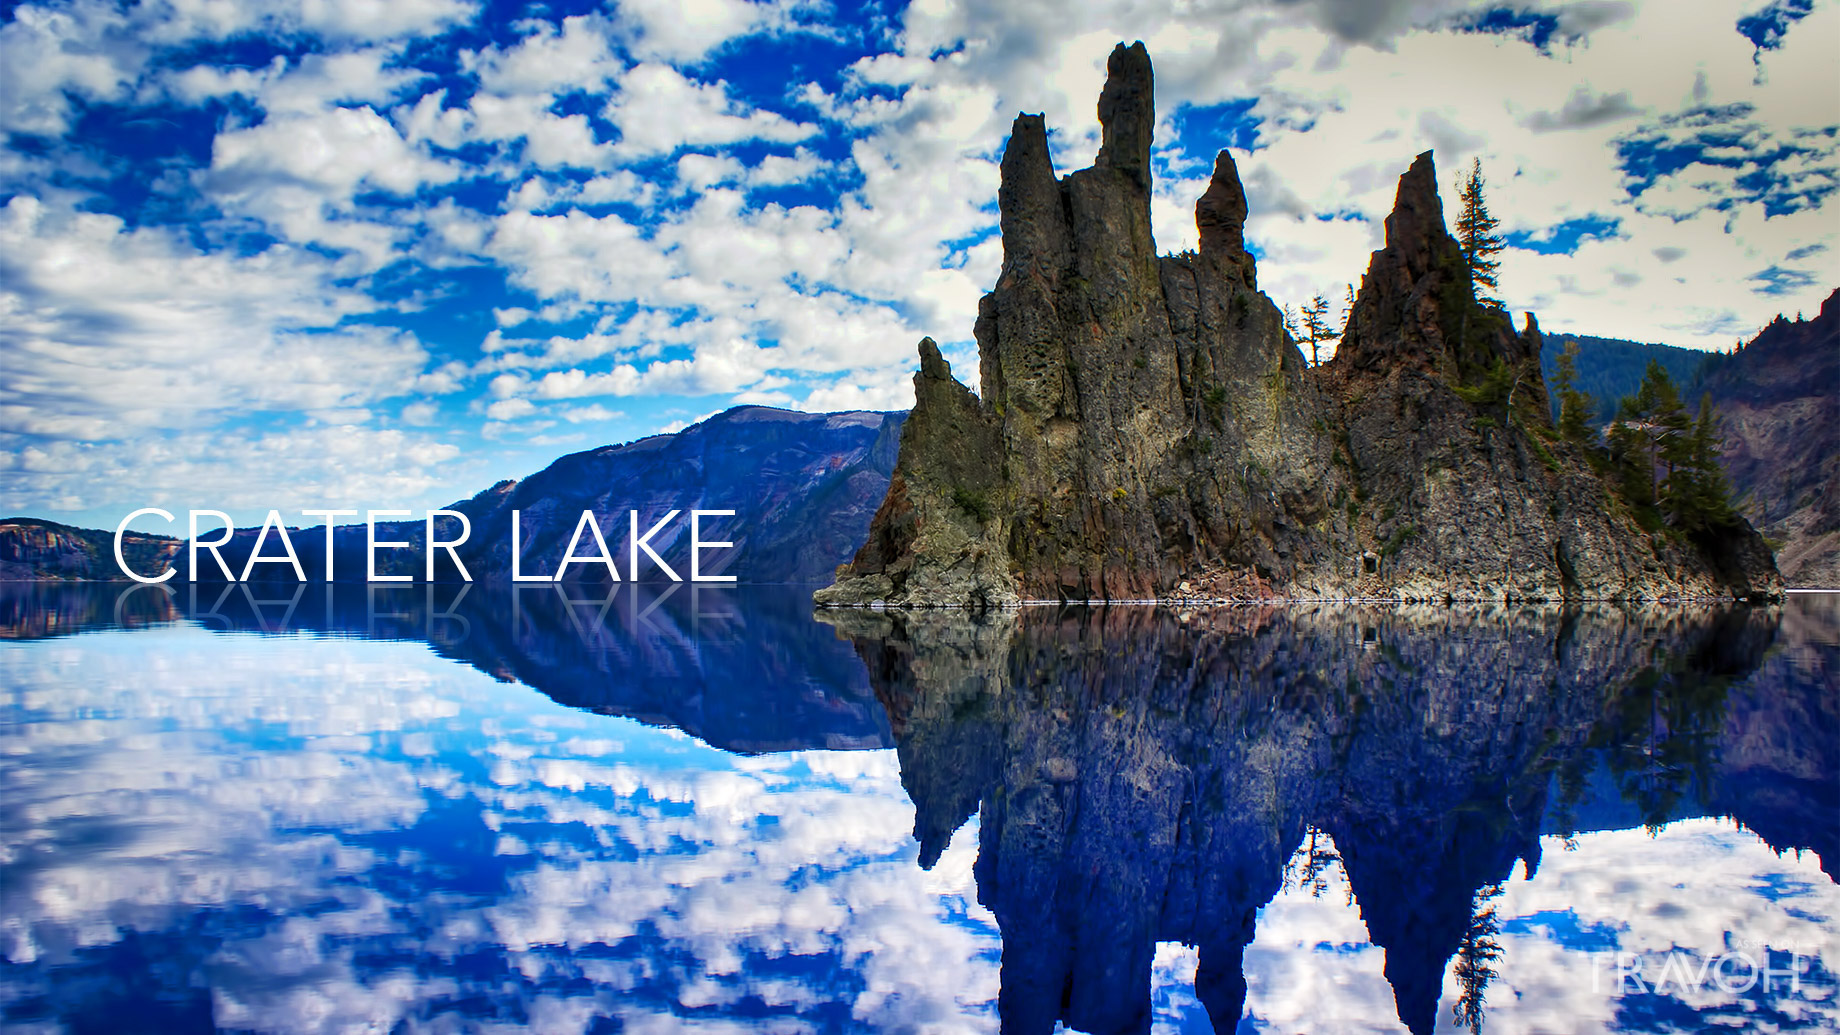 Crater Lake - America's Deepest Crystal Blue Water Lake in Oregon State